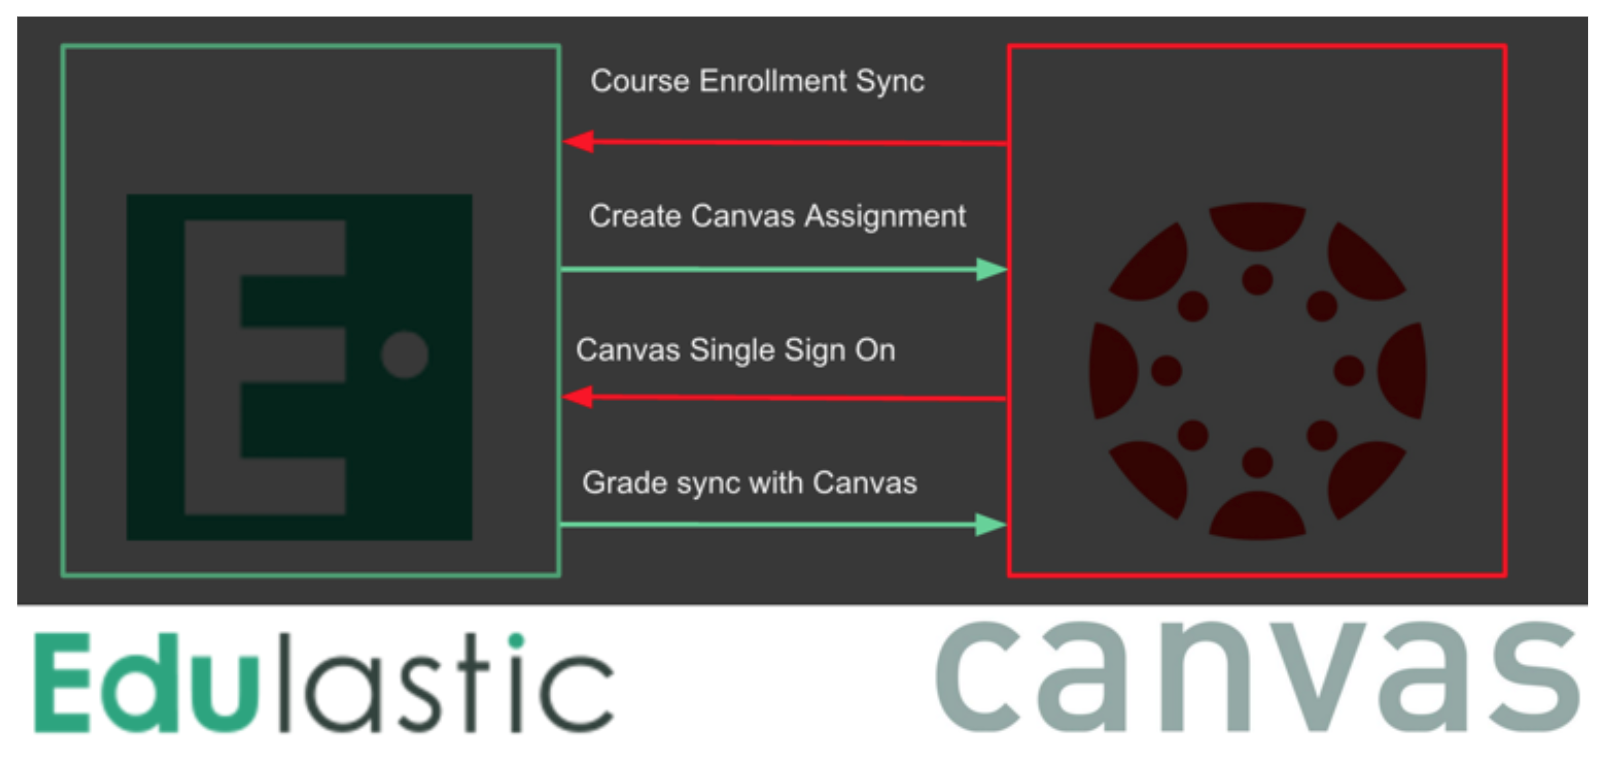 How does Edulastic integrate with Canvas? – Edulastic